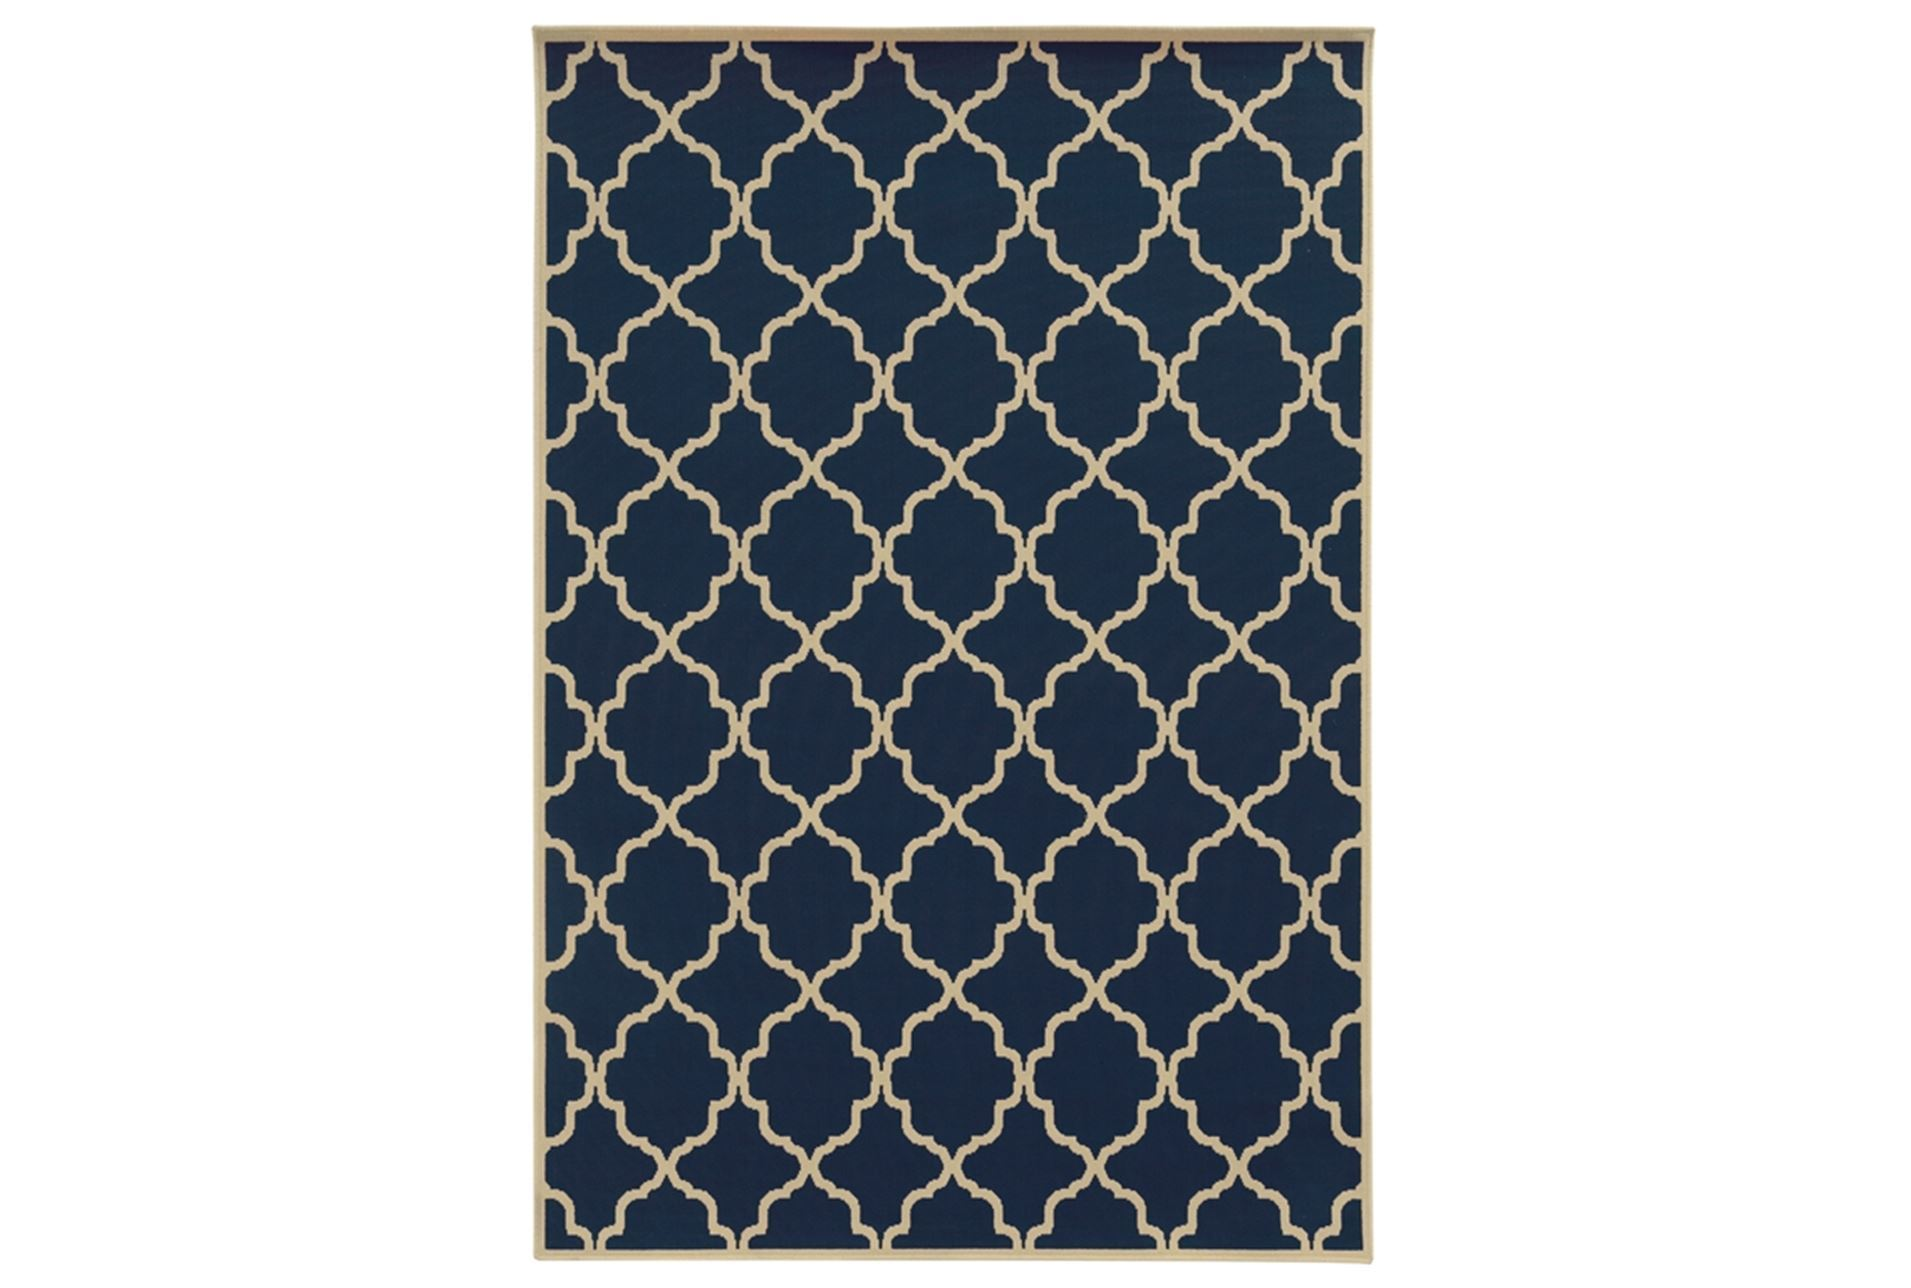 94x130 outdoor rug montauk navy living spaces for Living spaces rugs